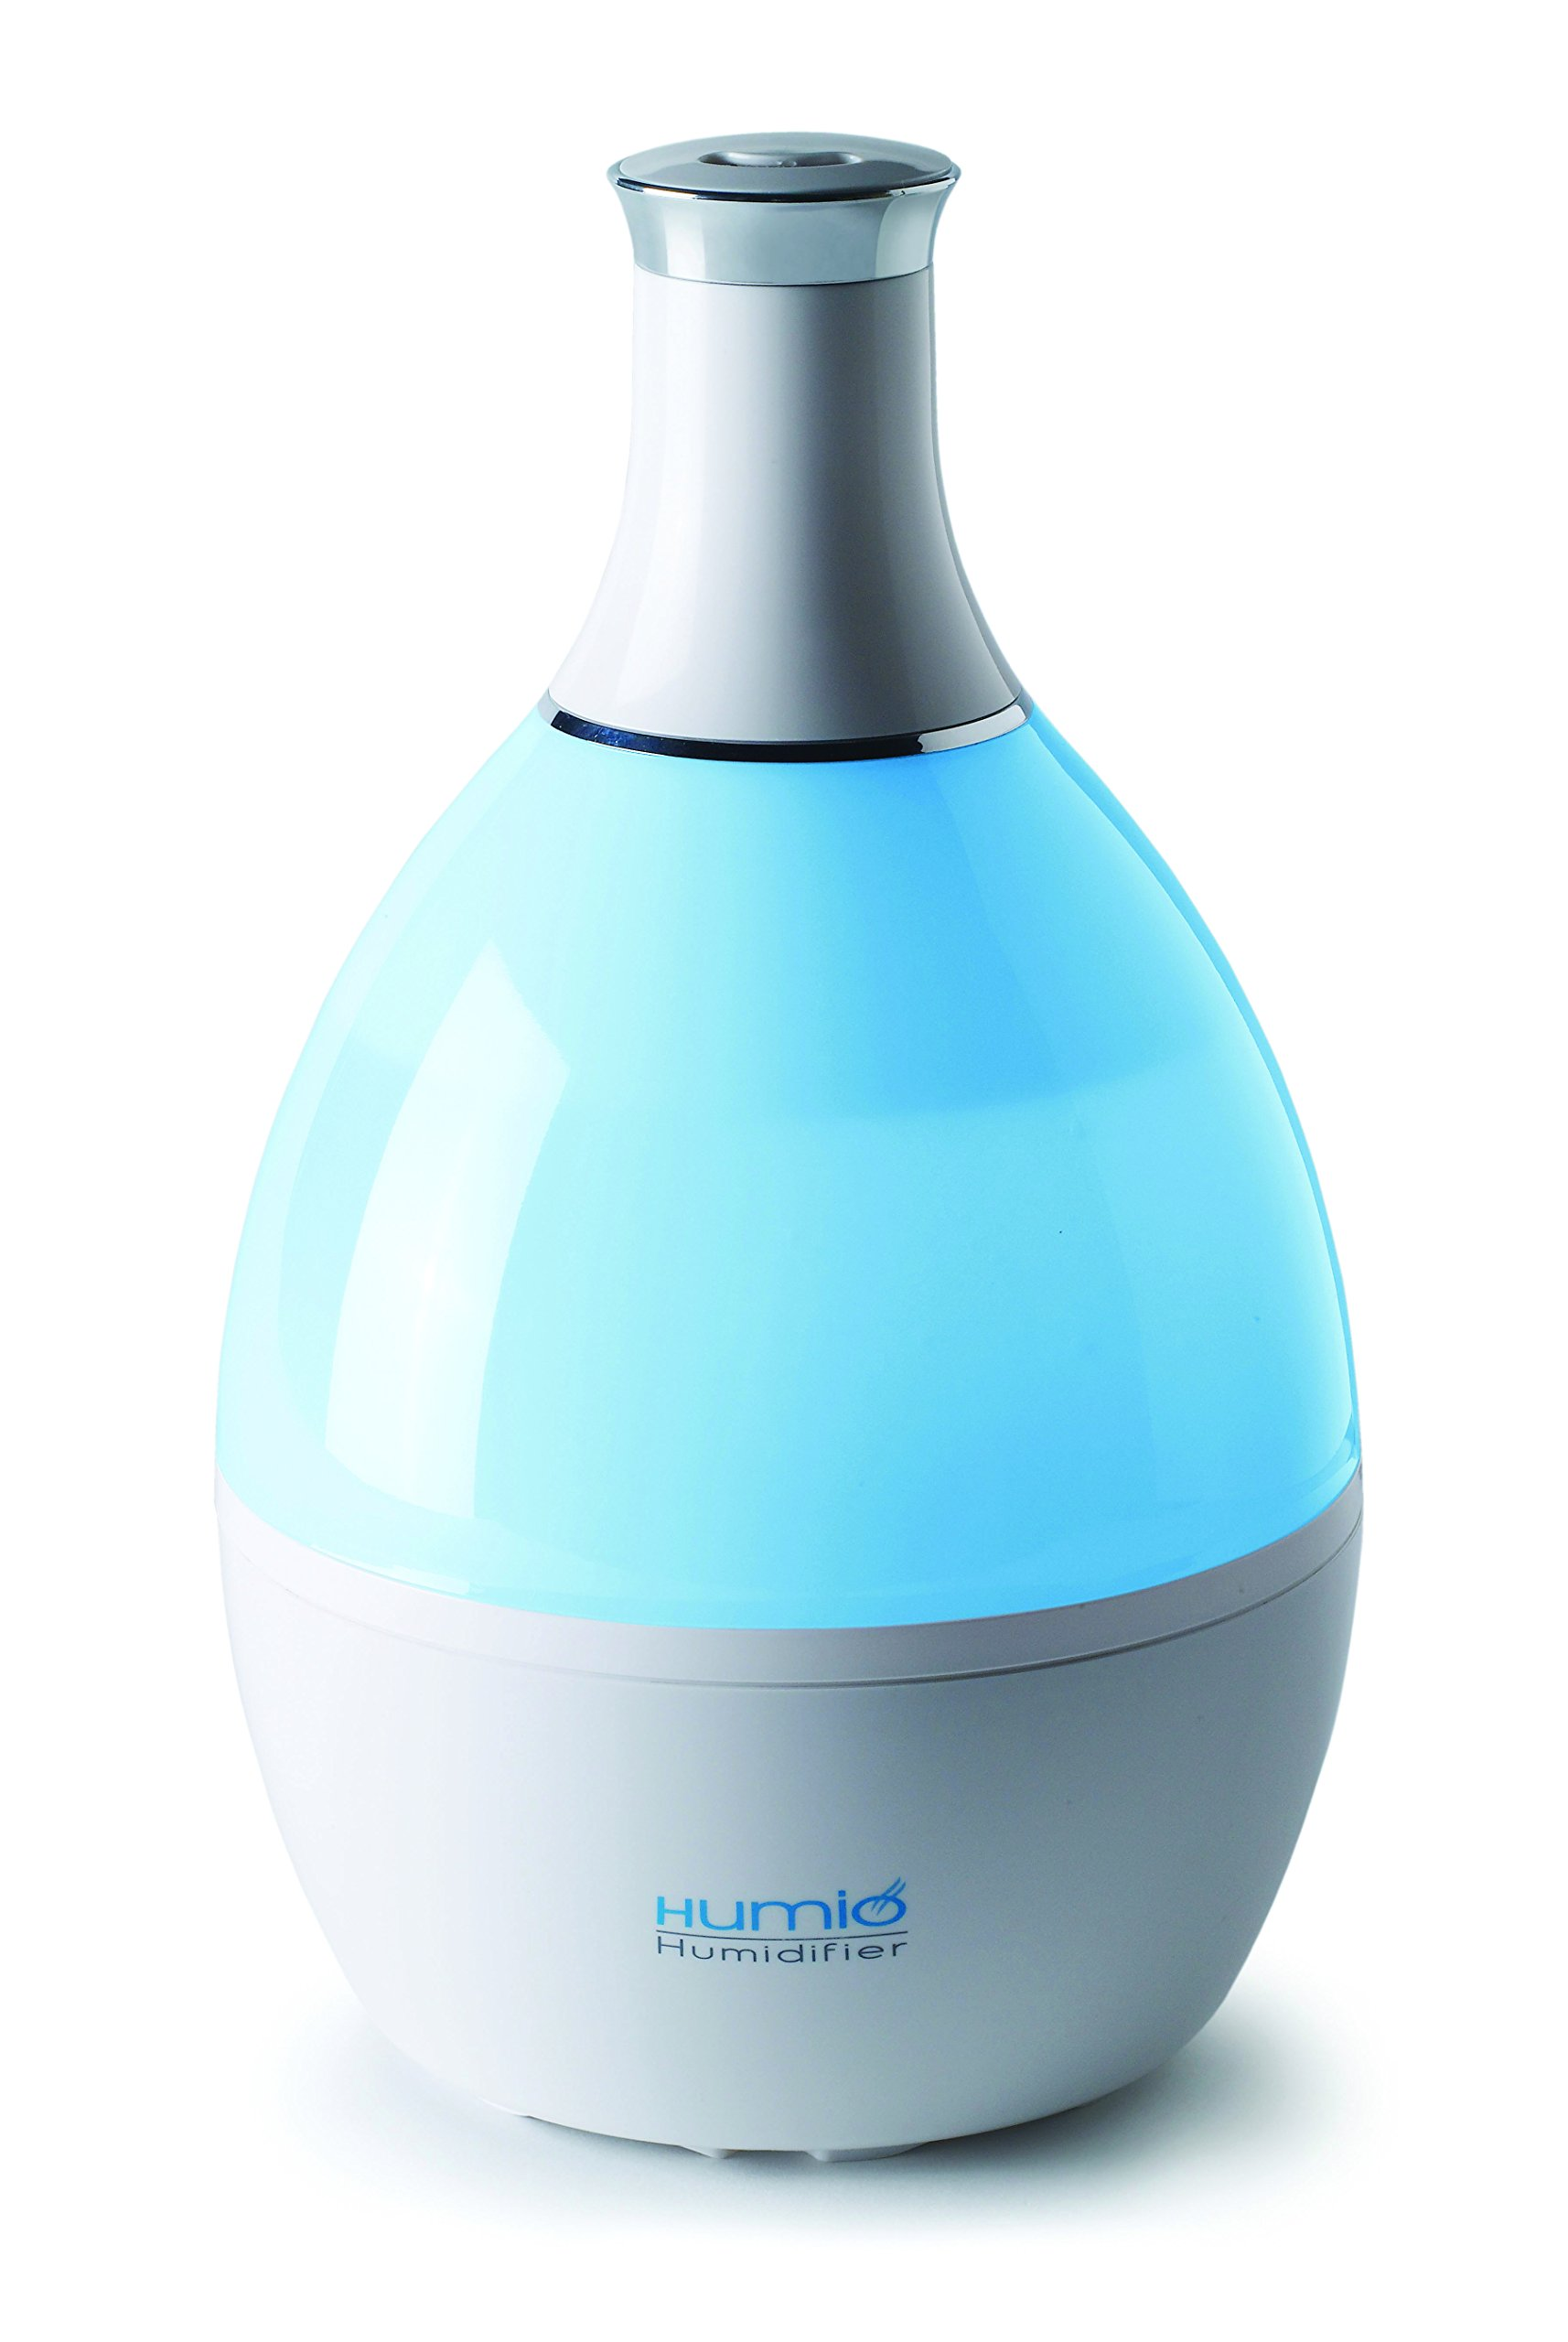 Tribest Humio 2 Humidifier w/Night Lamp Review